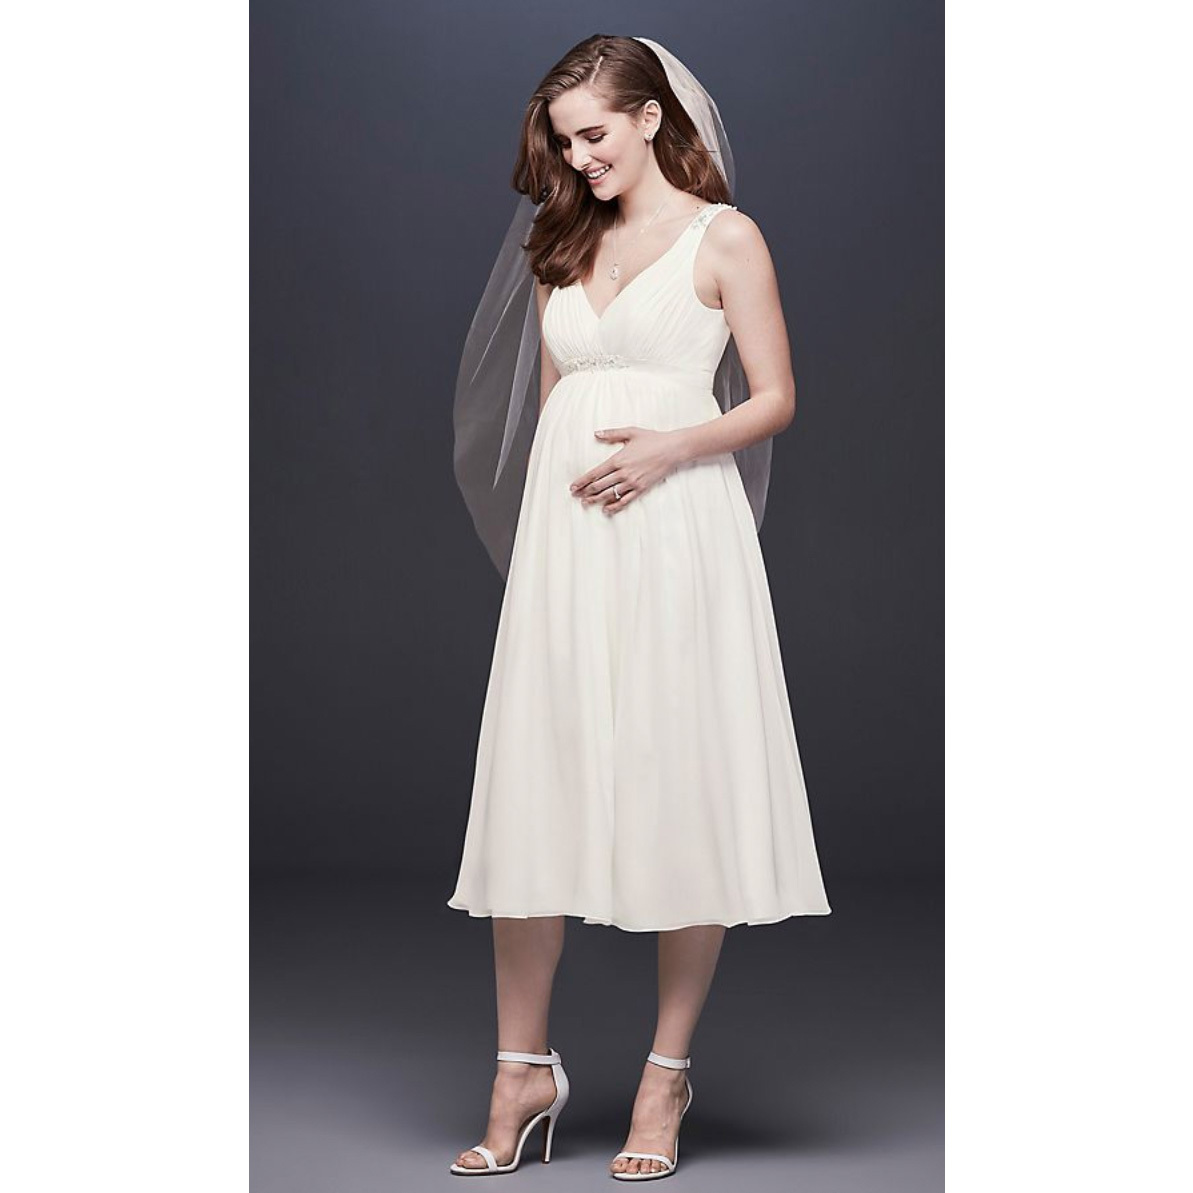 Model posing in David's Bridal Collection Chiffon V-Neck Tea-Length Maternity Wedding Dress photo